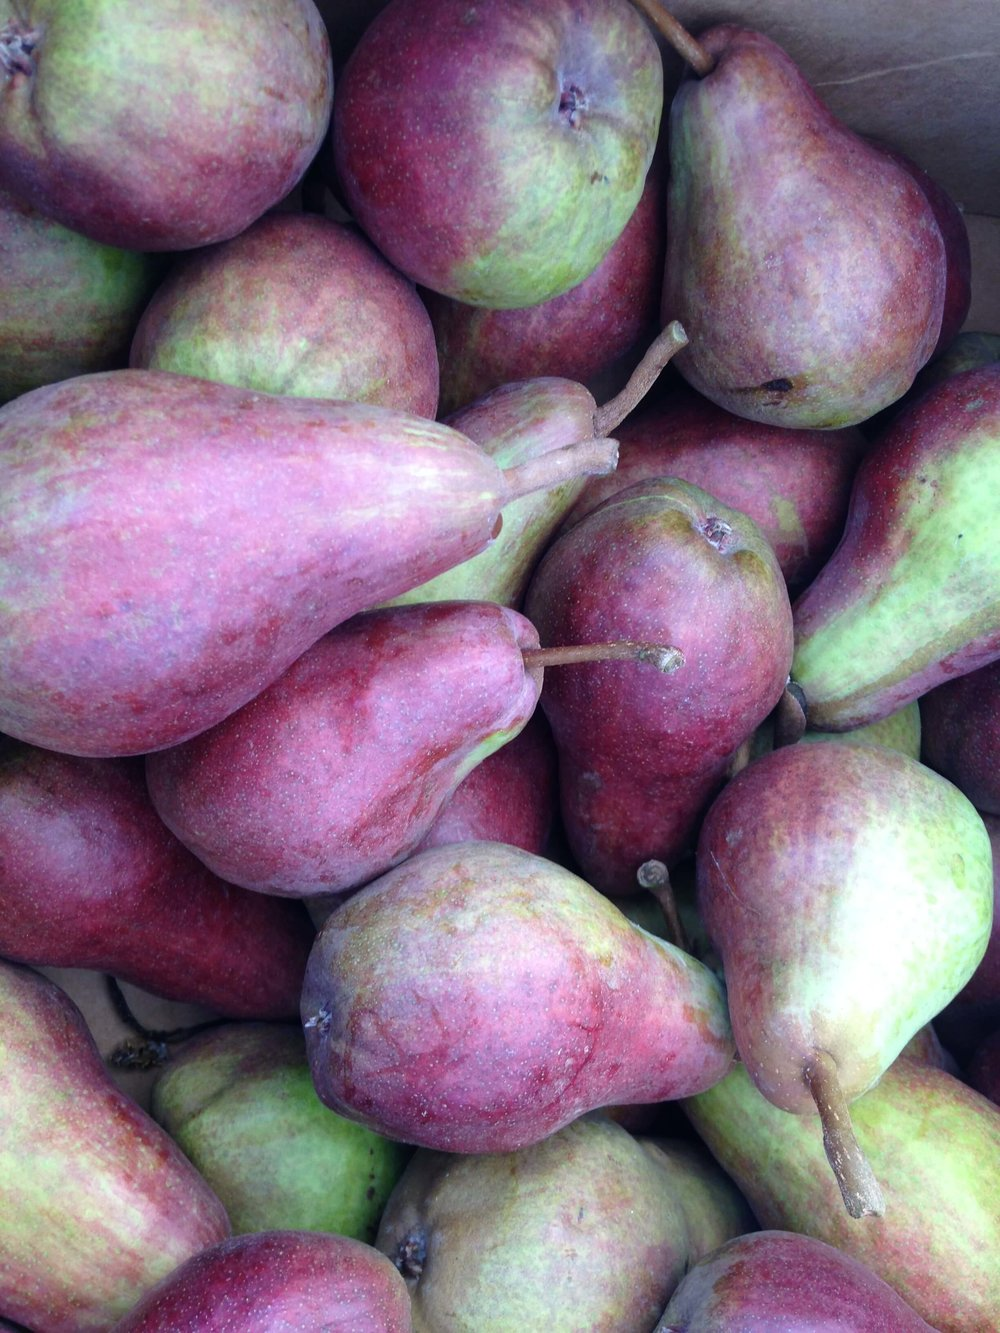 Purple and green pears contain fiber and carbohydrate to help balance blood sugars in diabetic diet.